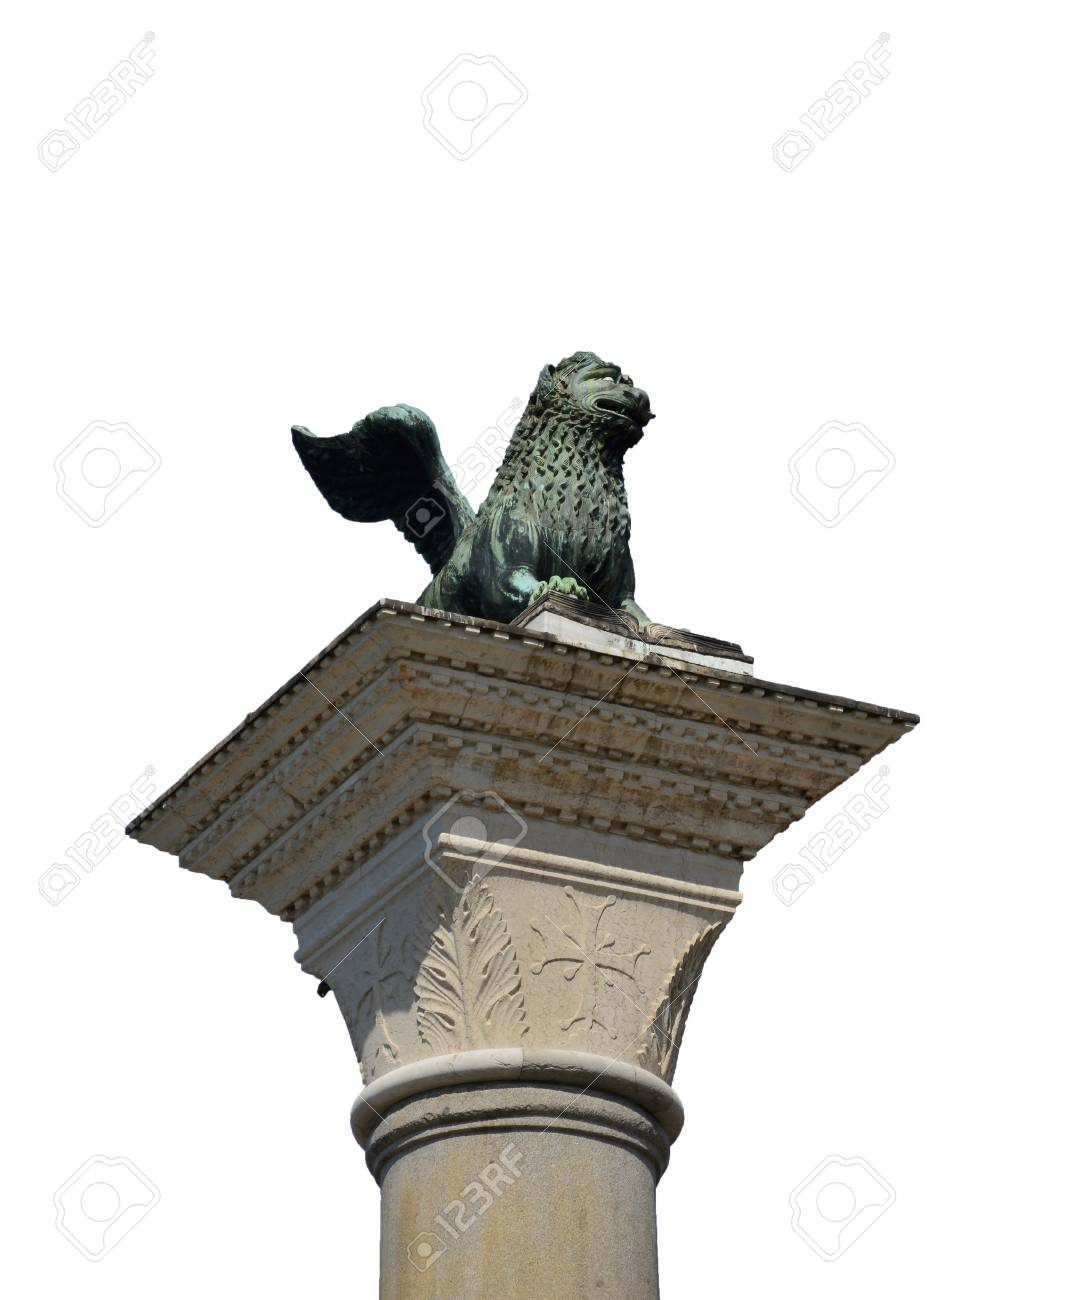 Saint Mark Lion medieval bronze statue at the top of the ancient column, symbol of the old Republic of Venice (isolated on white background) Banque d'images - 82505205